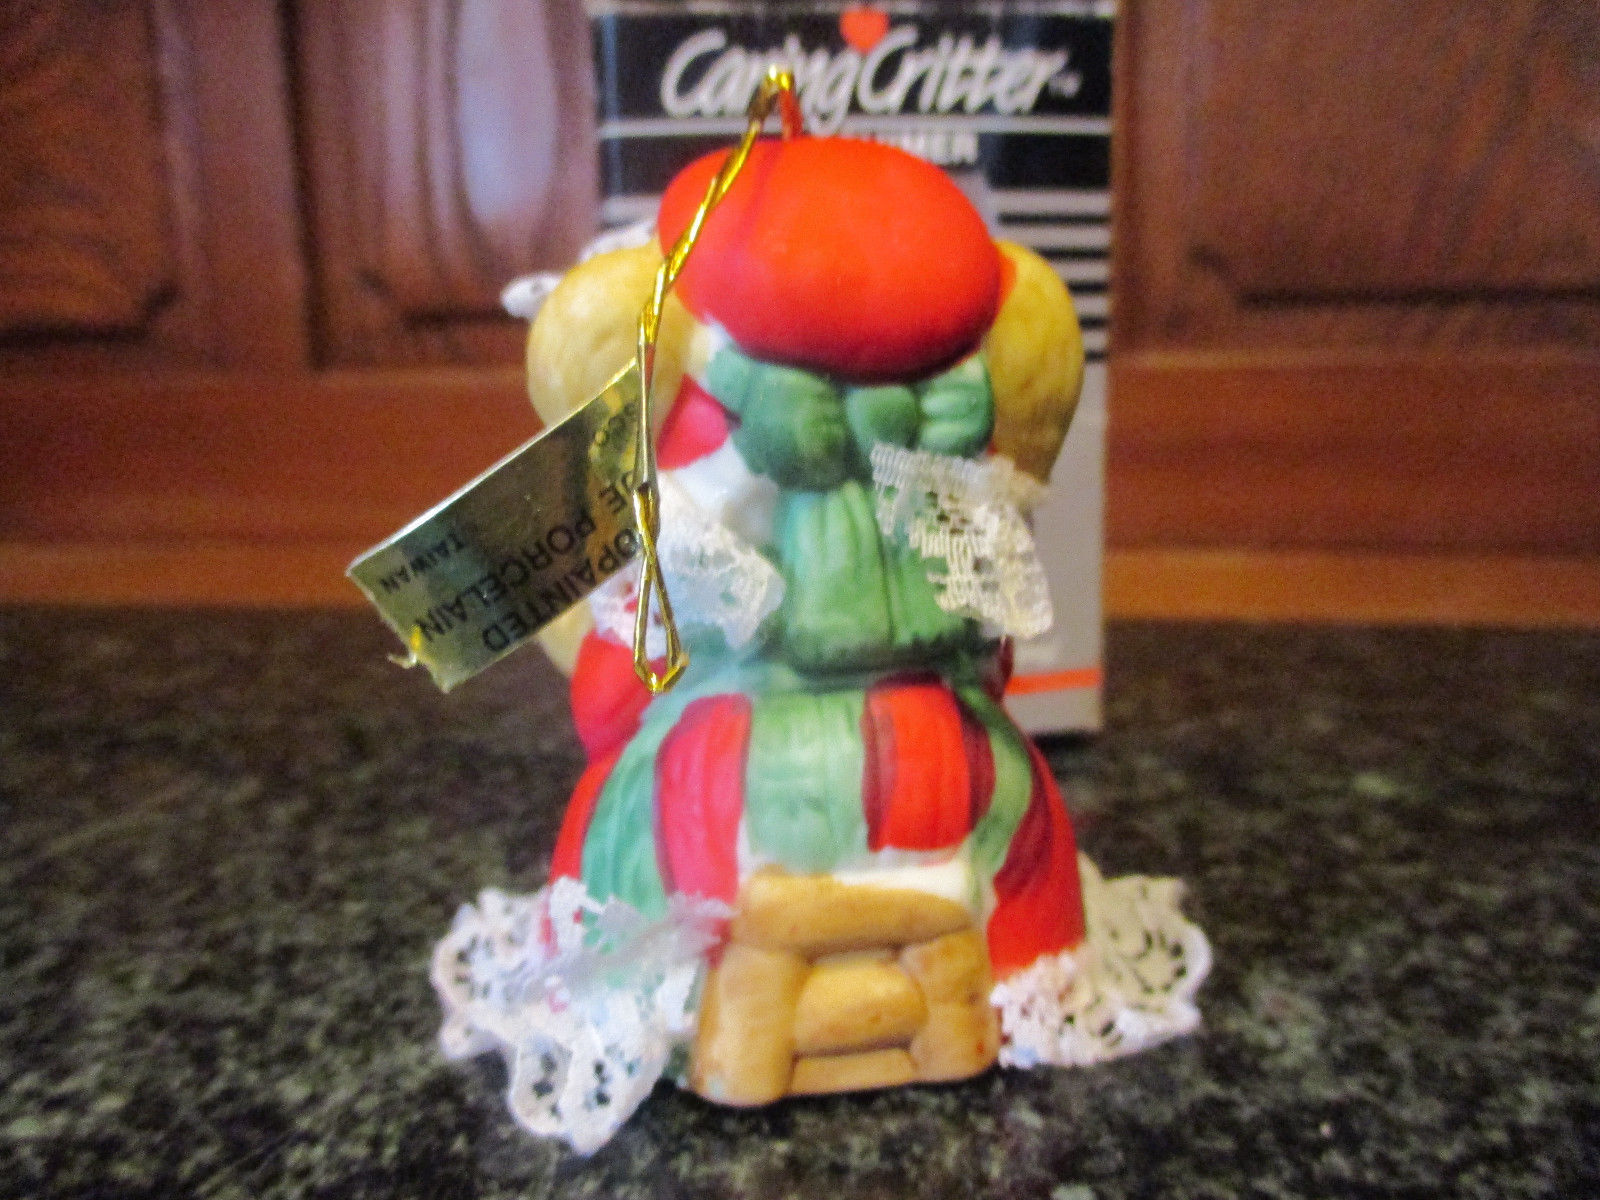 Caring Critter Chimer Mother mouse holding baby Christmas Bell ornament